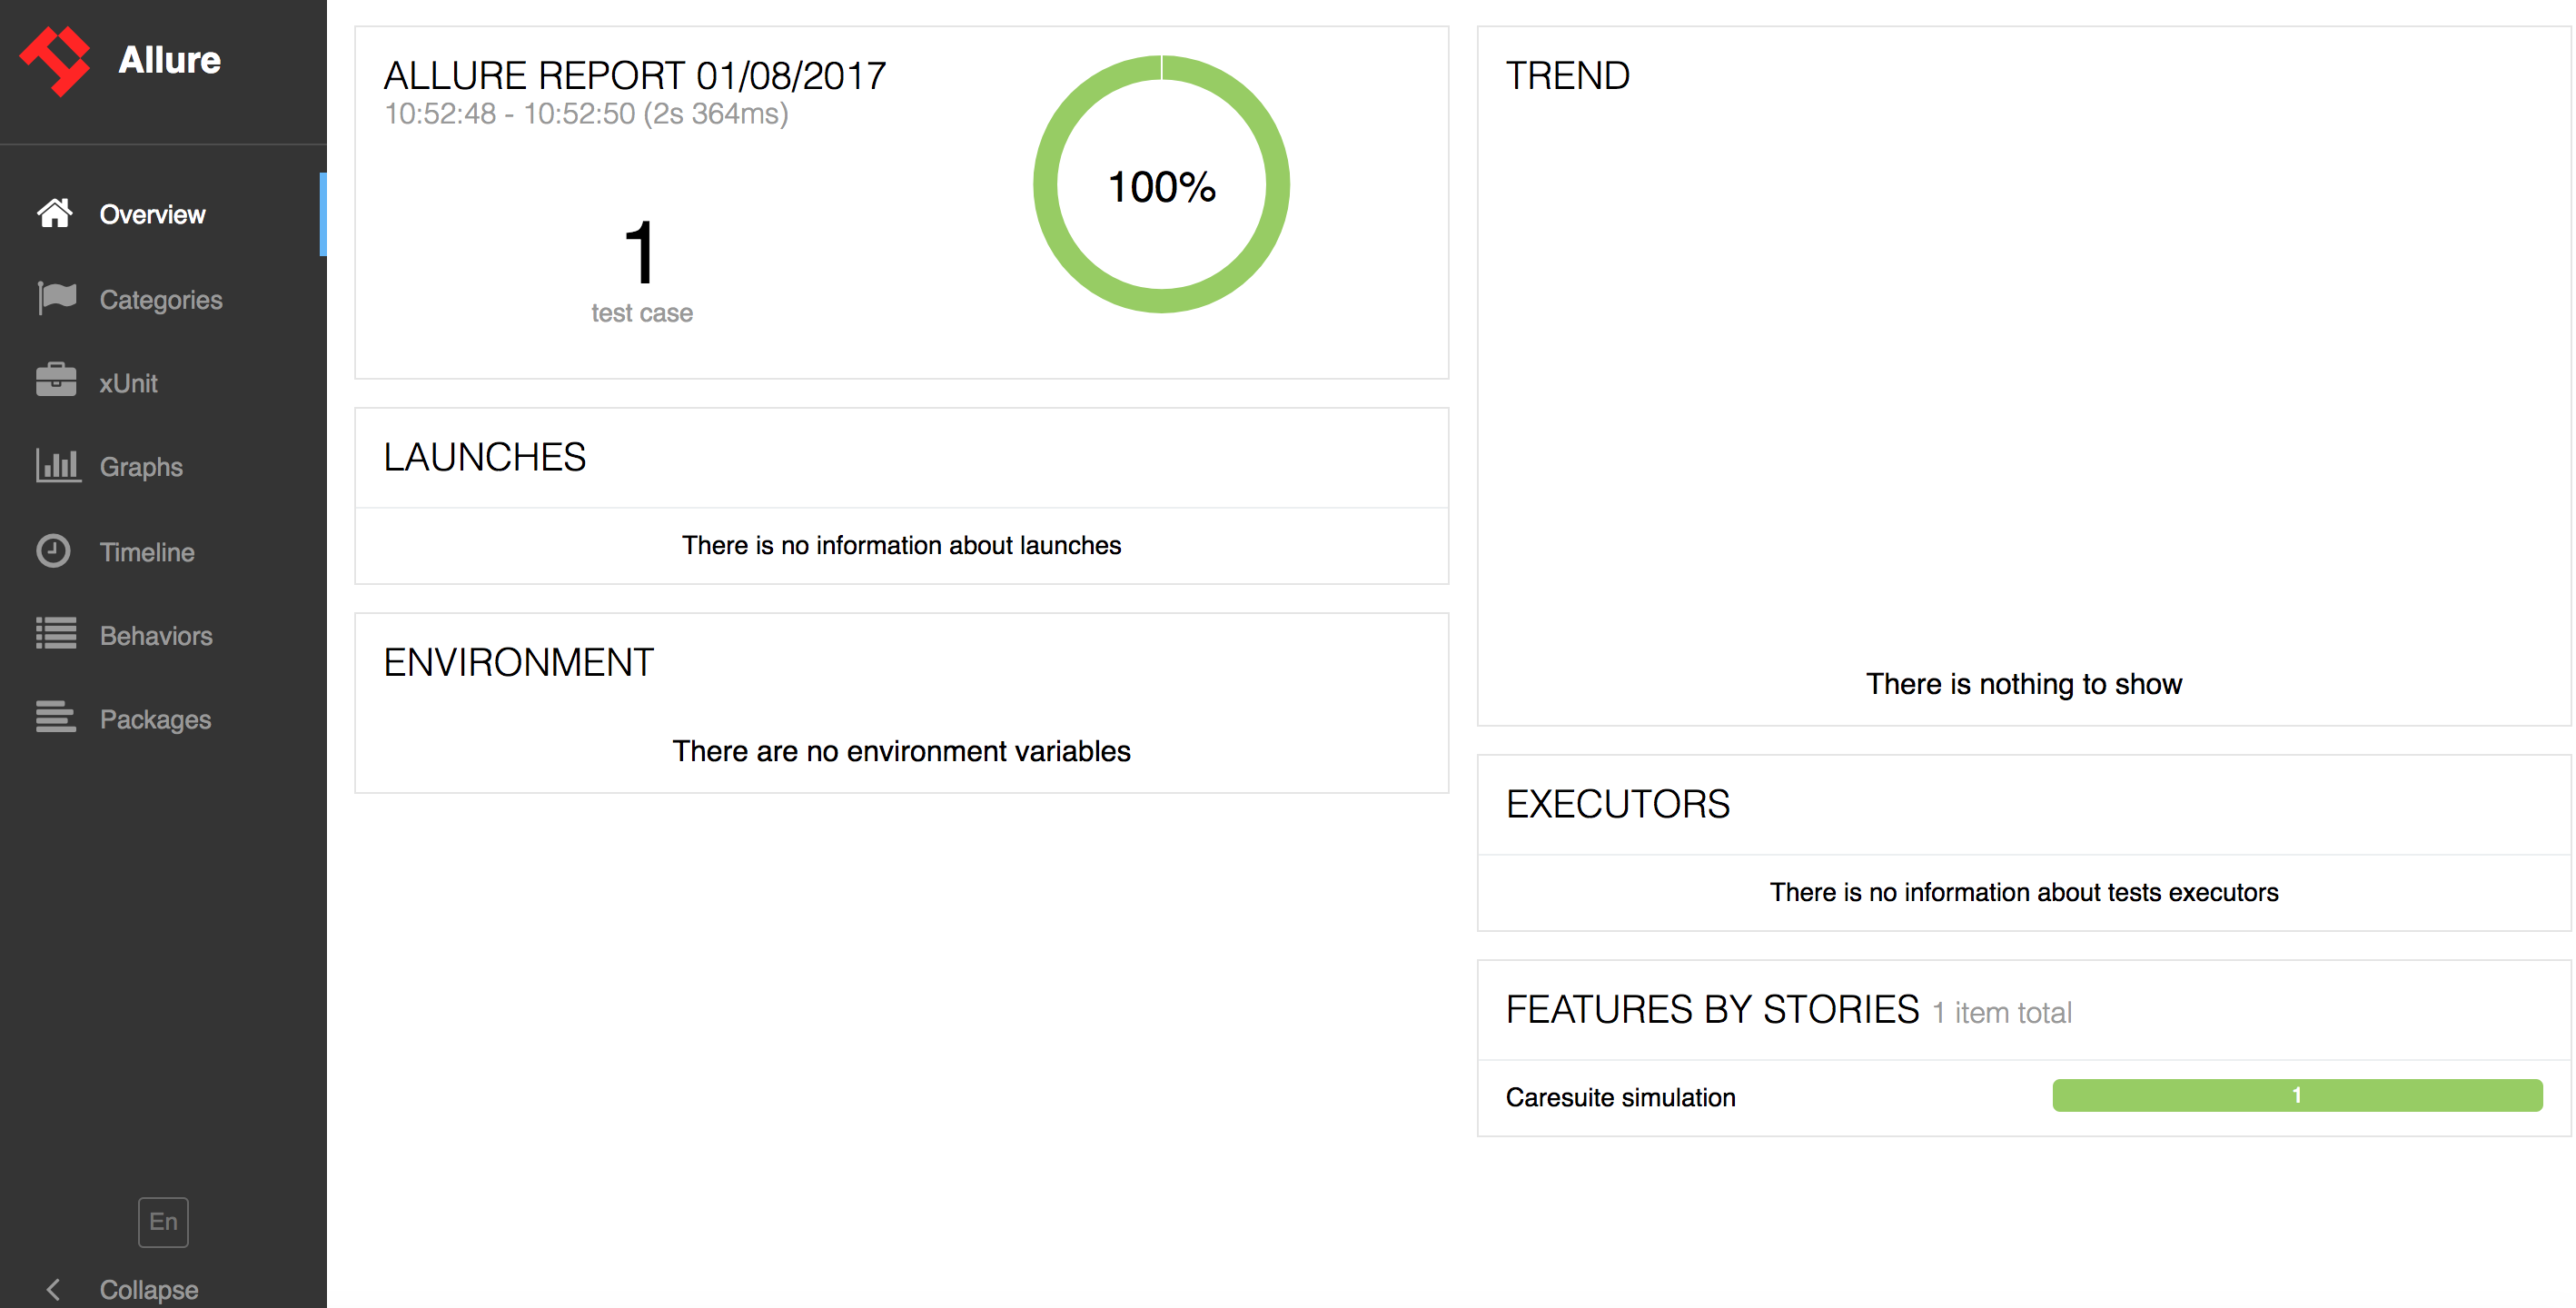 Allure2 report differs depending if report is generated by allure